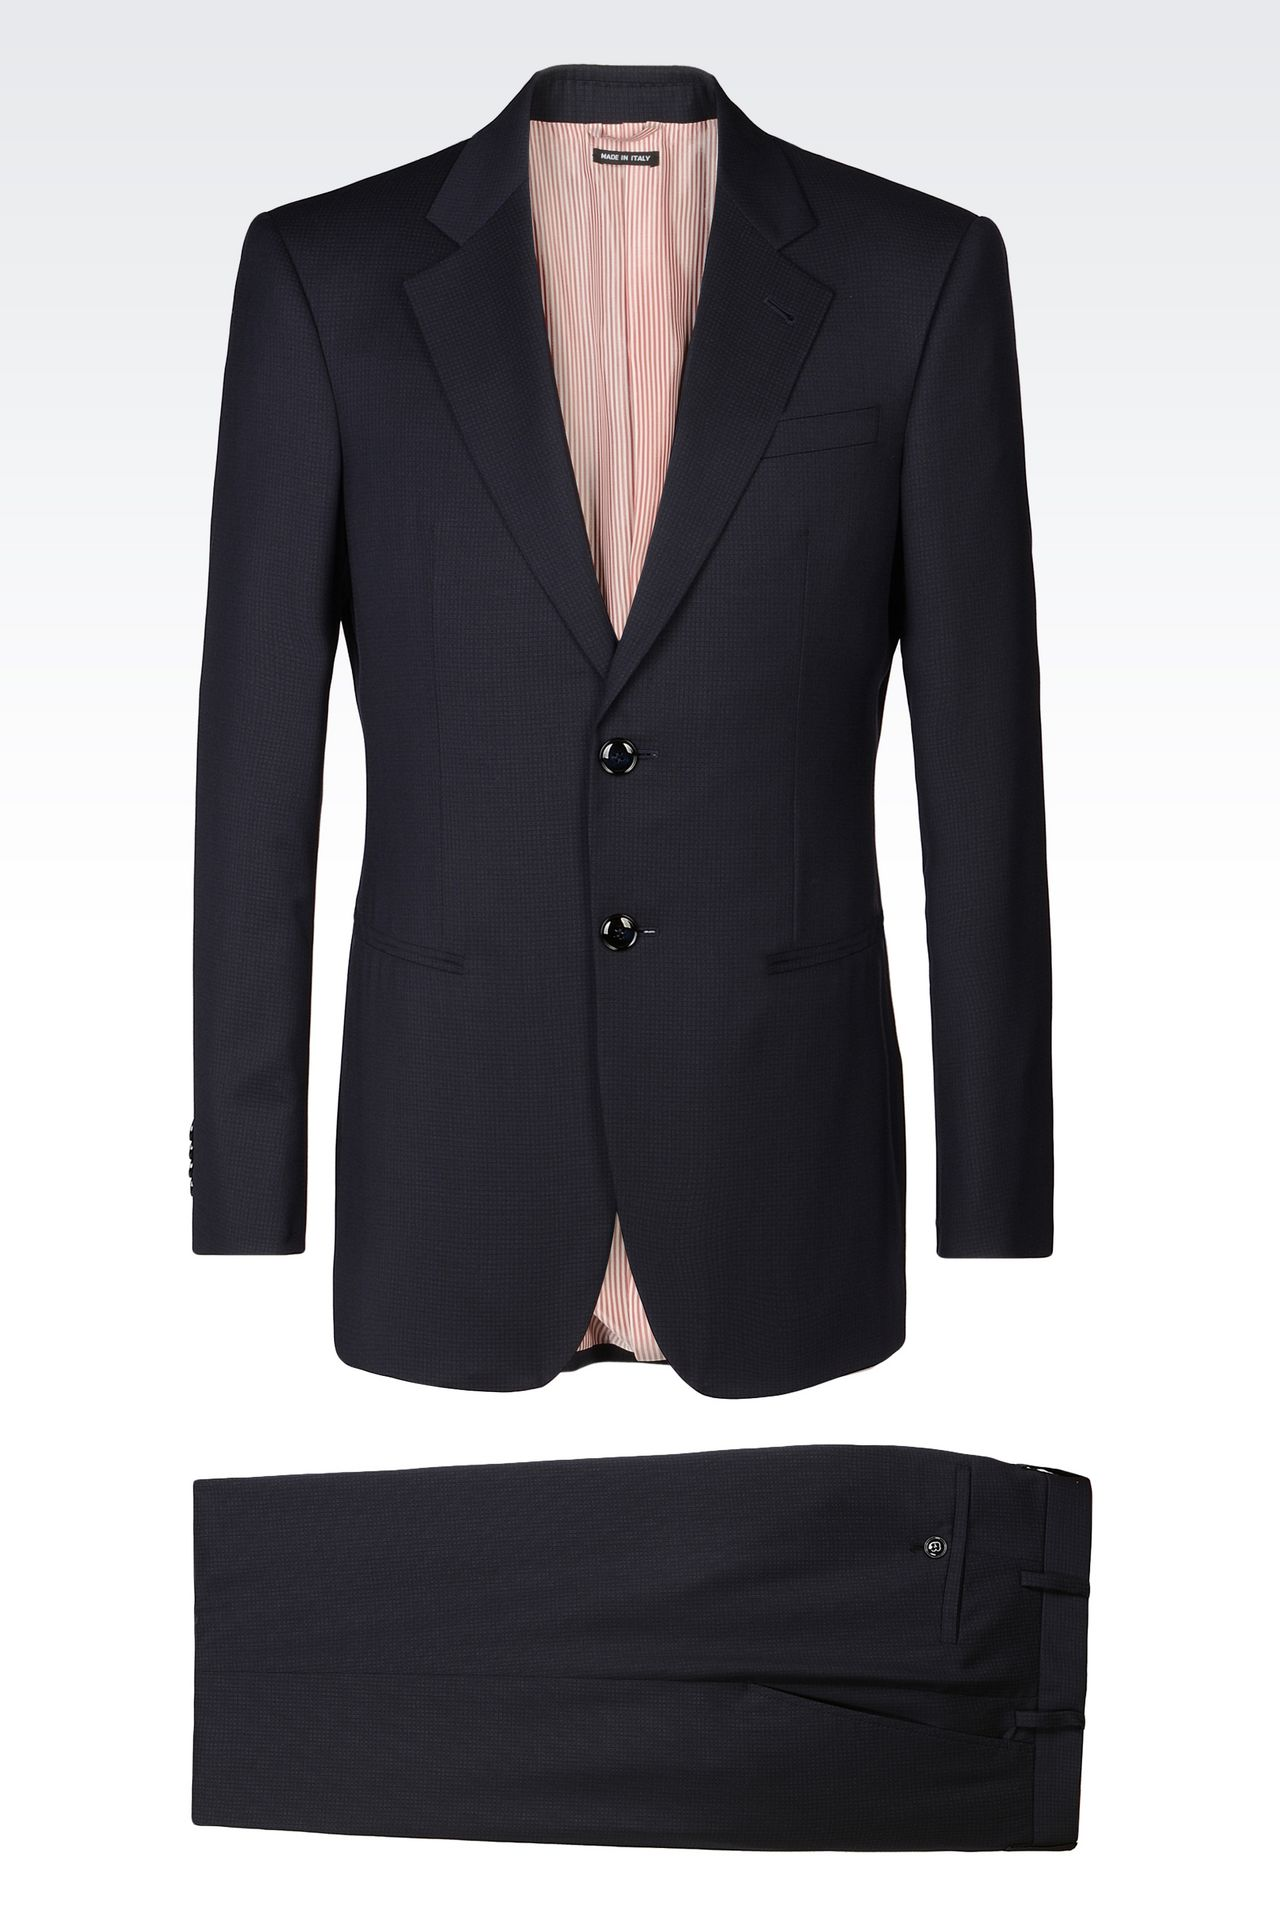 Giorgio Armani Suits for Men - Spring Summer 2017 - Armani.com